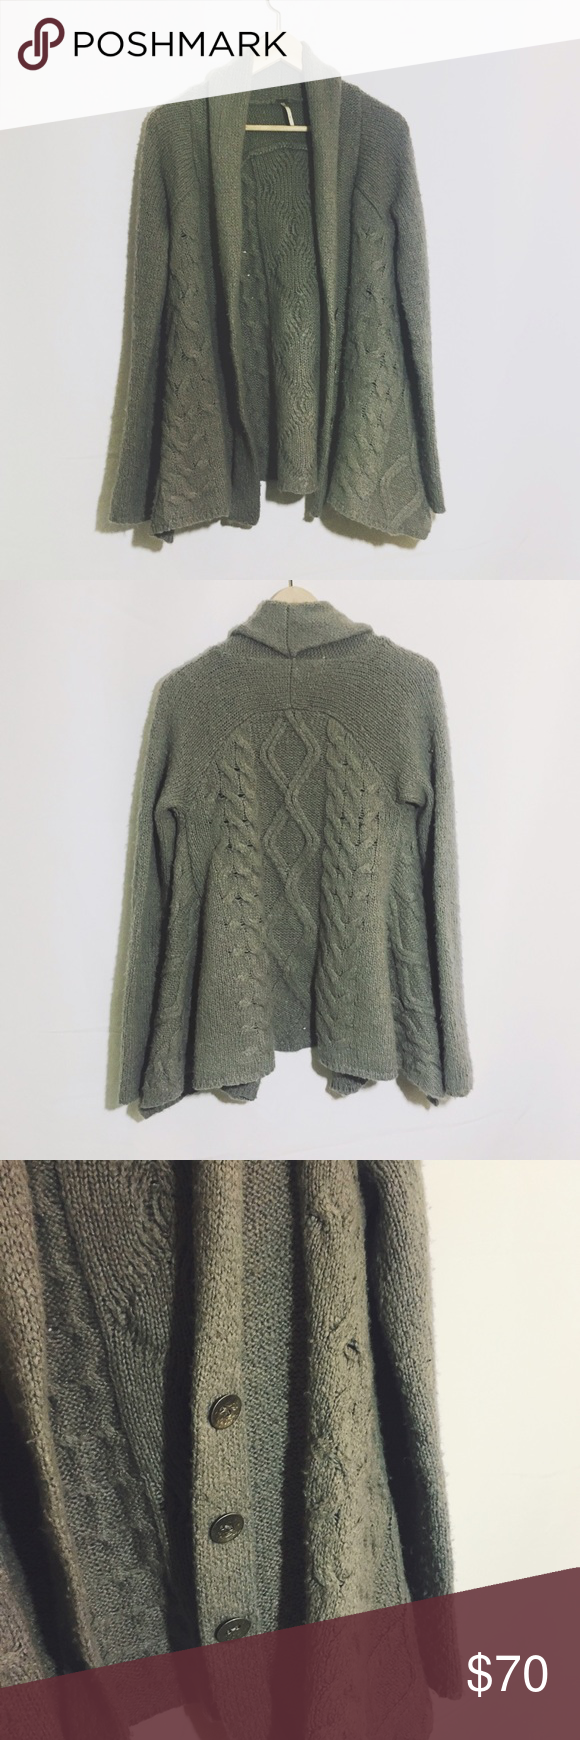 FREE PEOPLE grey knit chunky cardigan oversized Great condition. Gently loved. Perfect soft and warm and cozy Free People Sweaters Cardigans